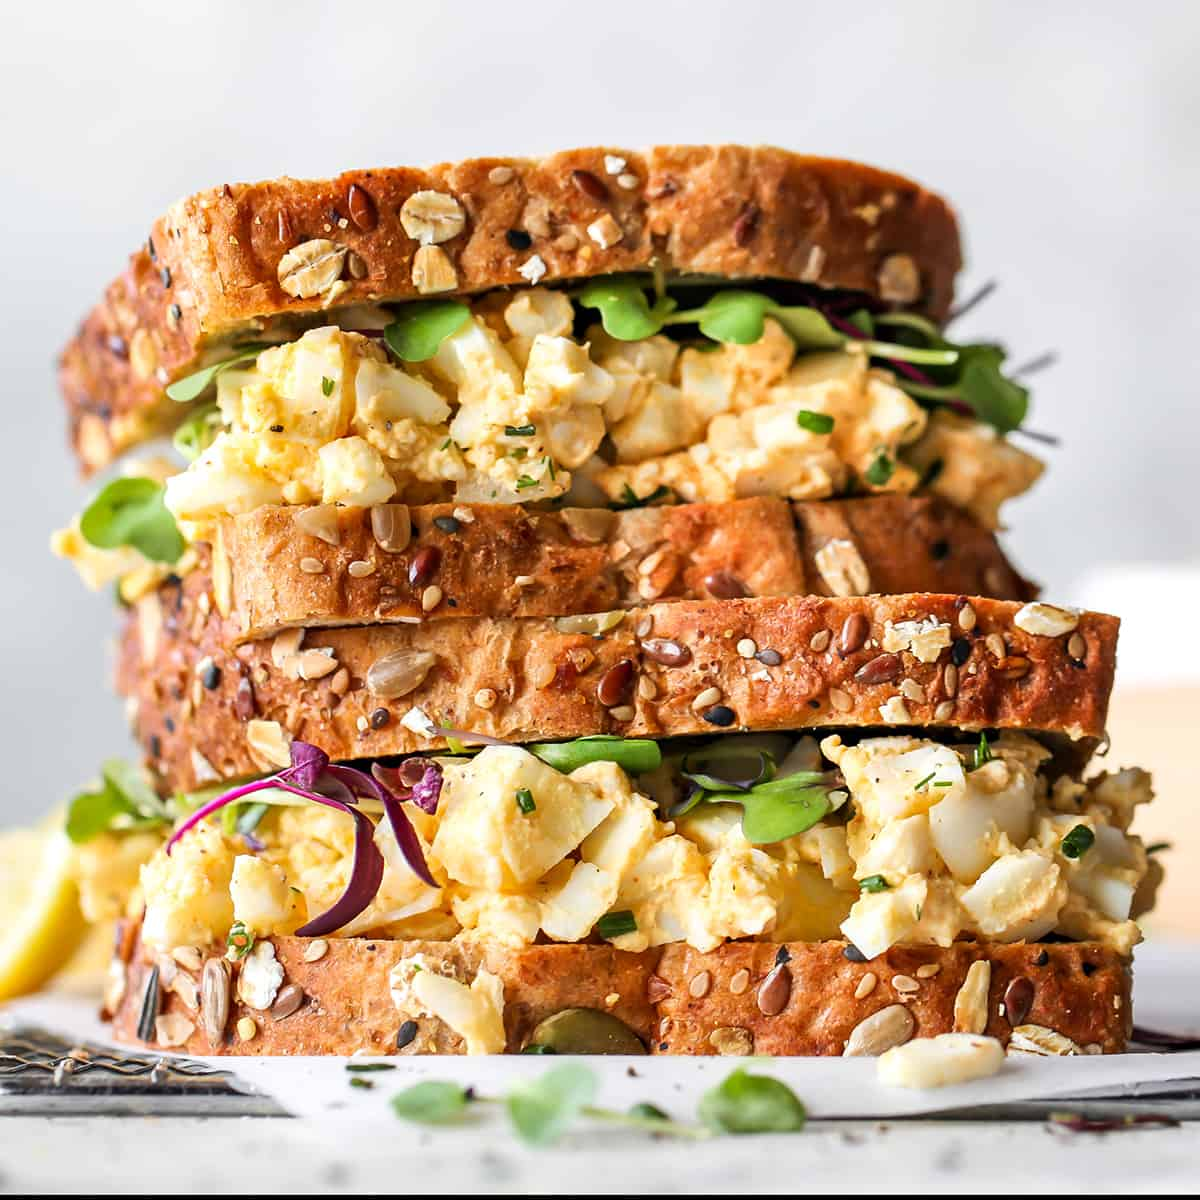 photo of two egg salad sandwiches stacked on each other